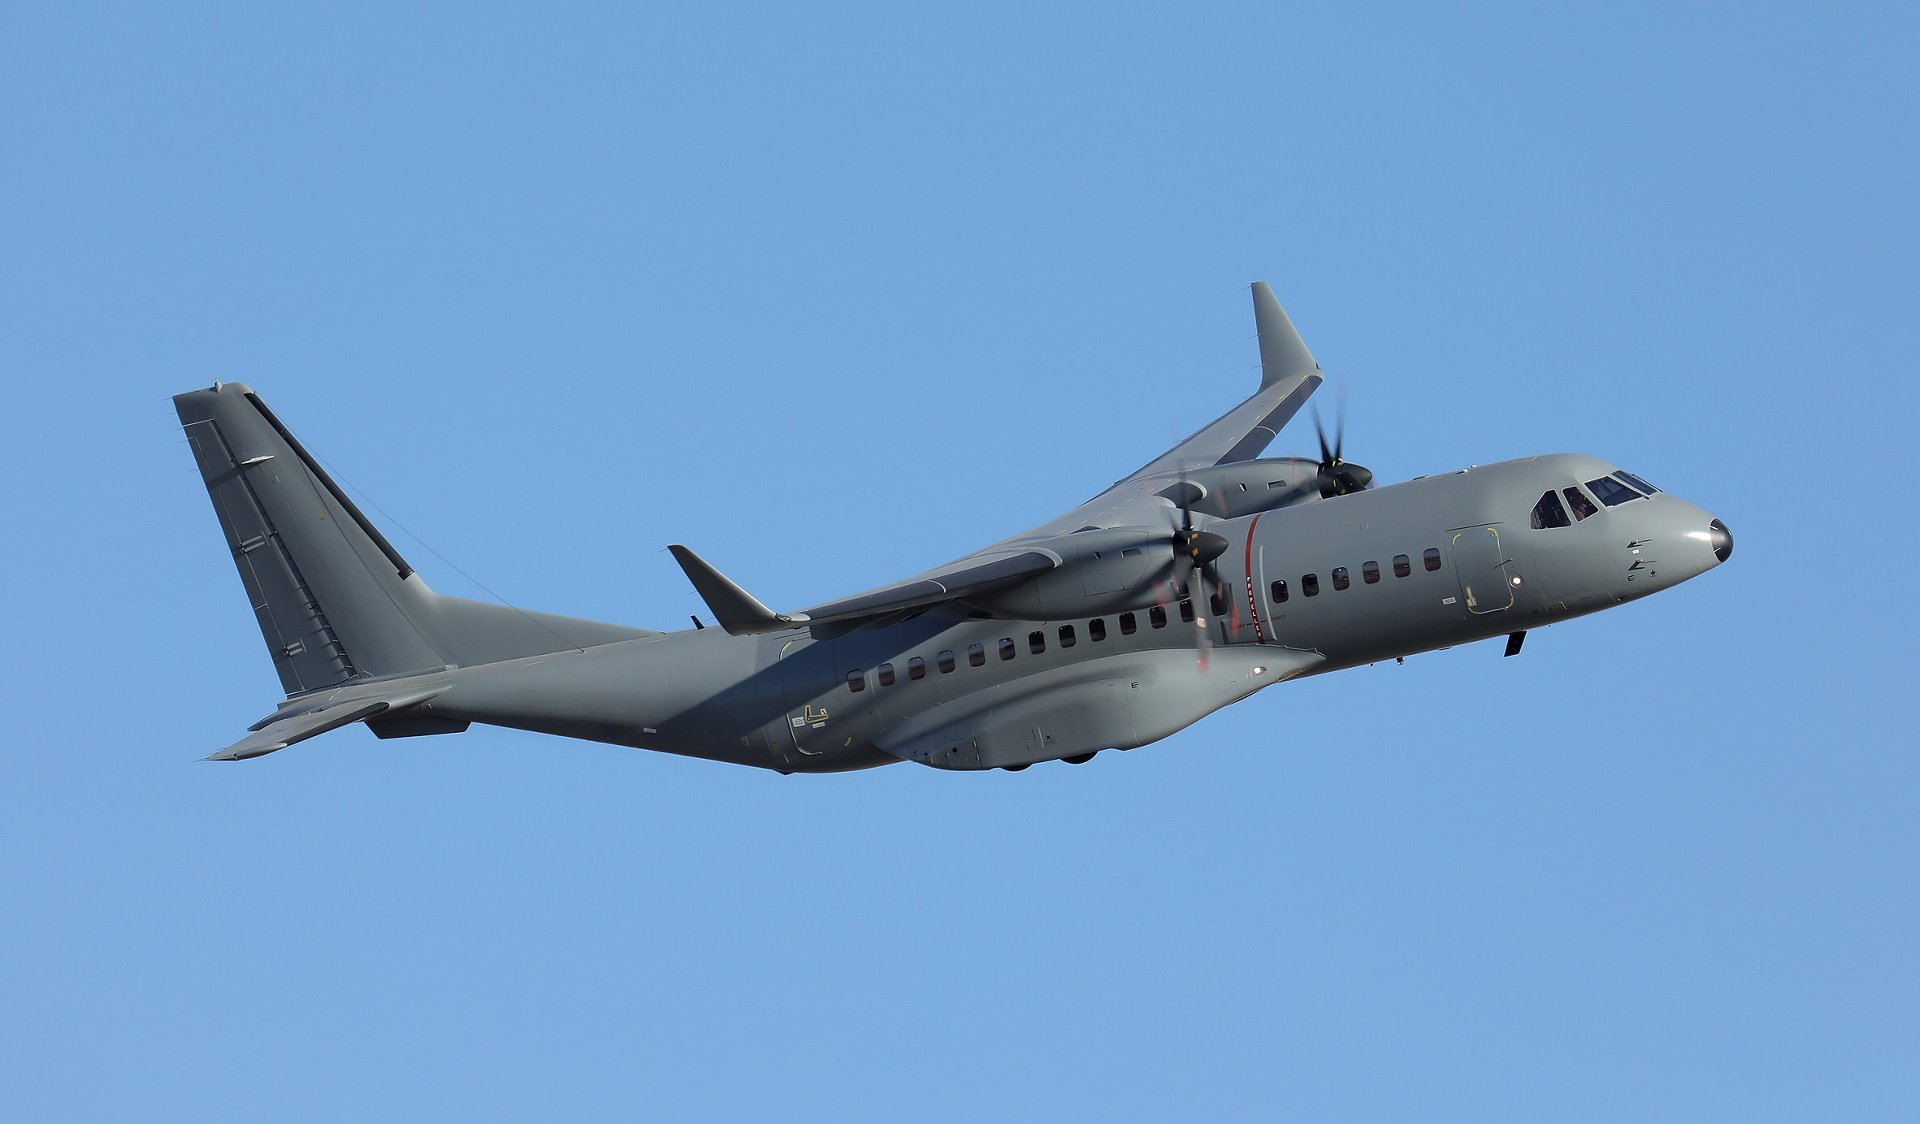 A C295 in-flight during a military mission.